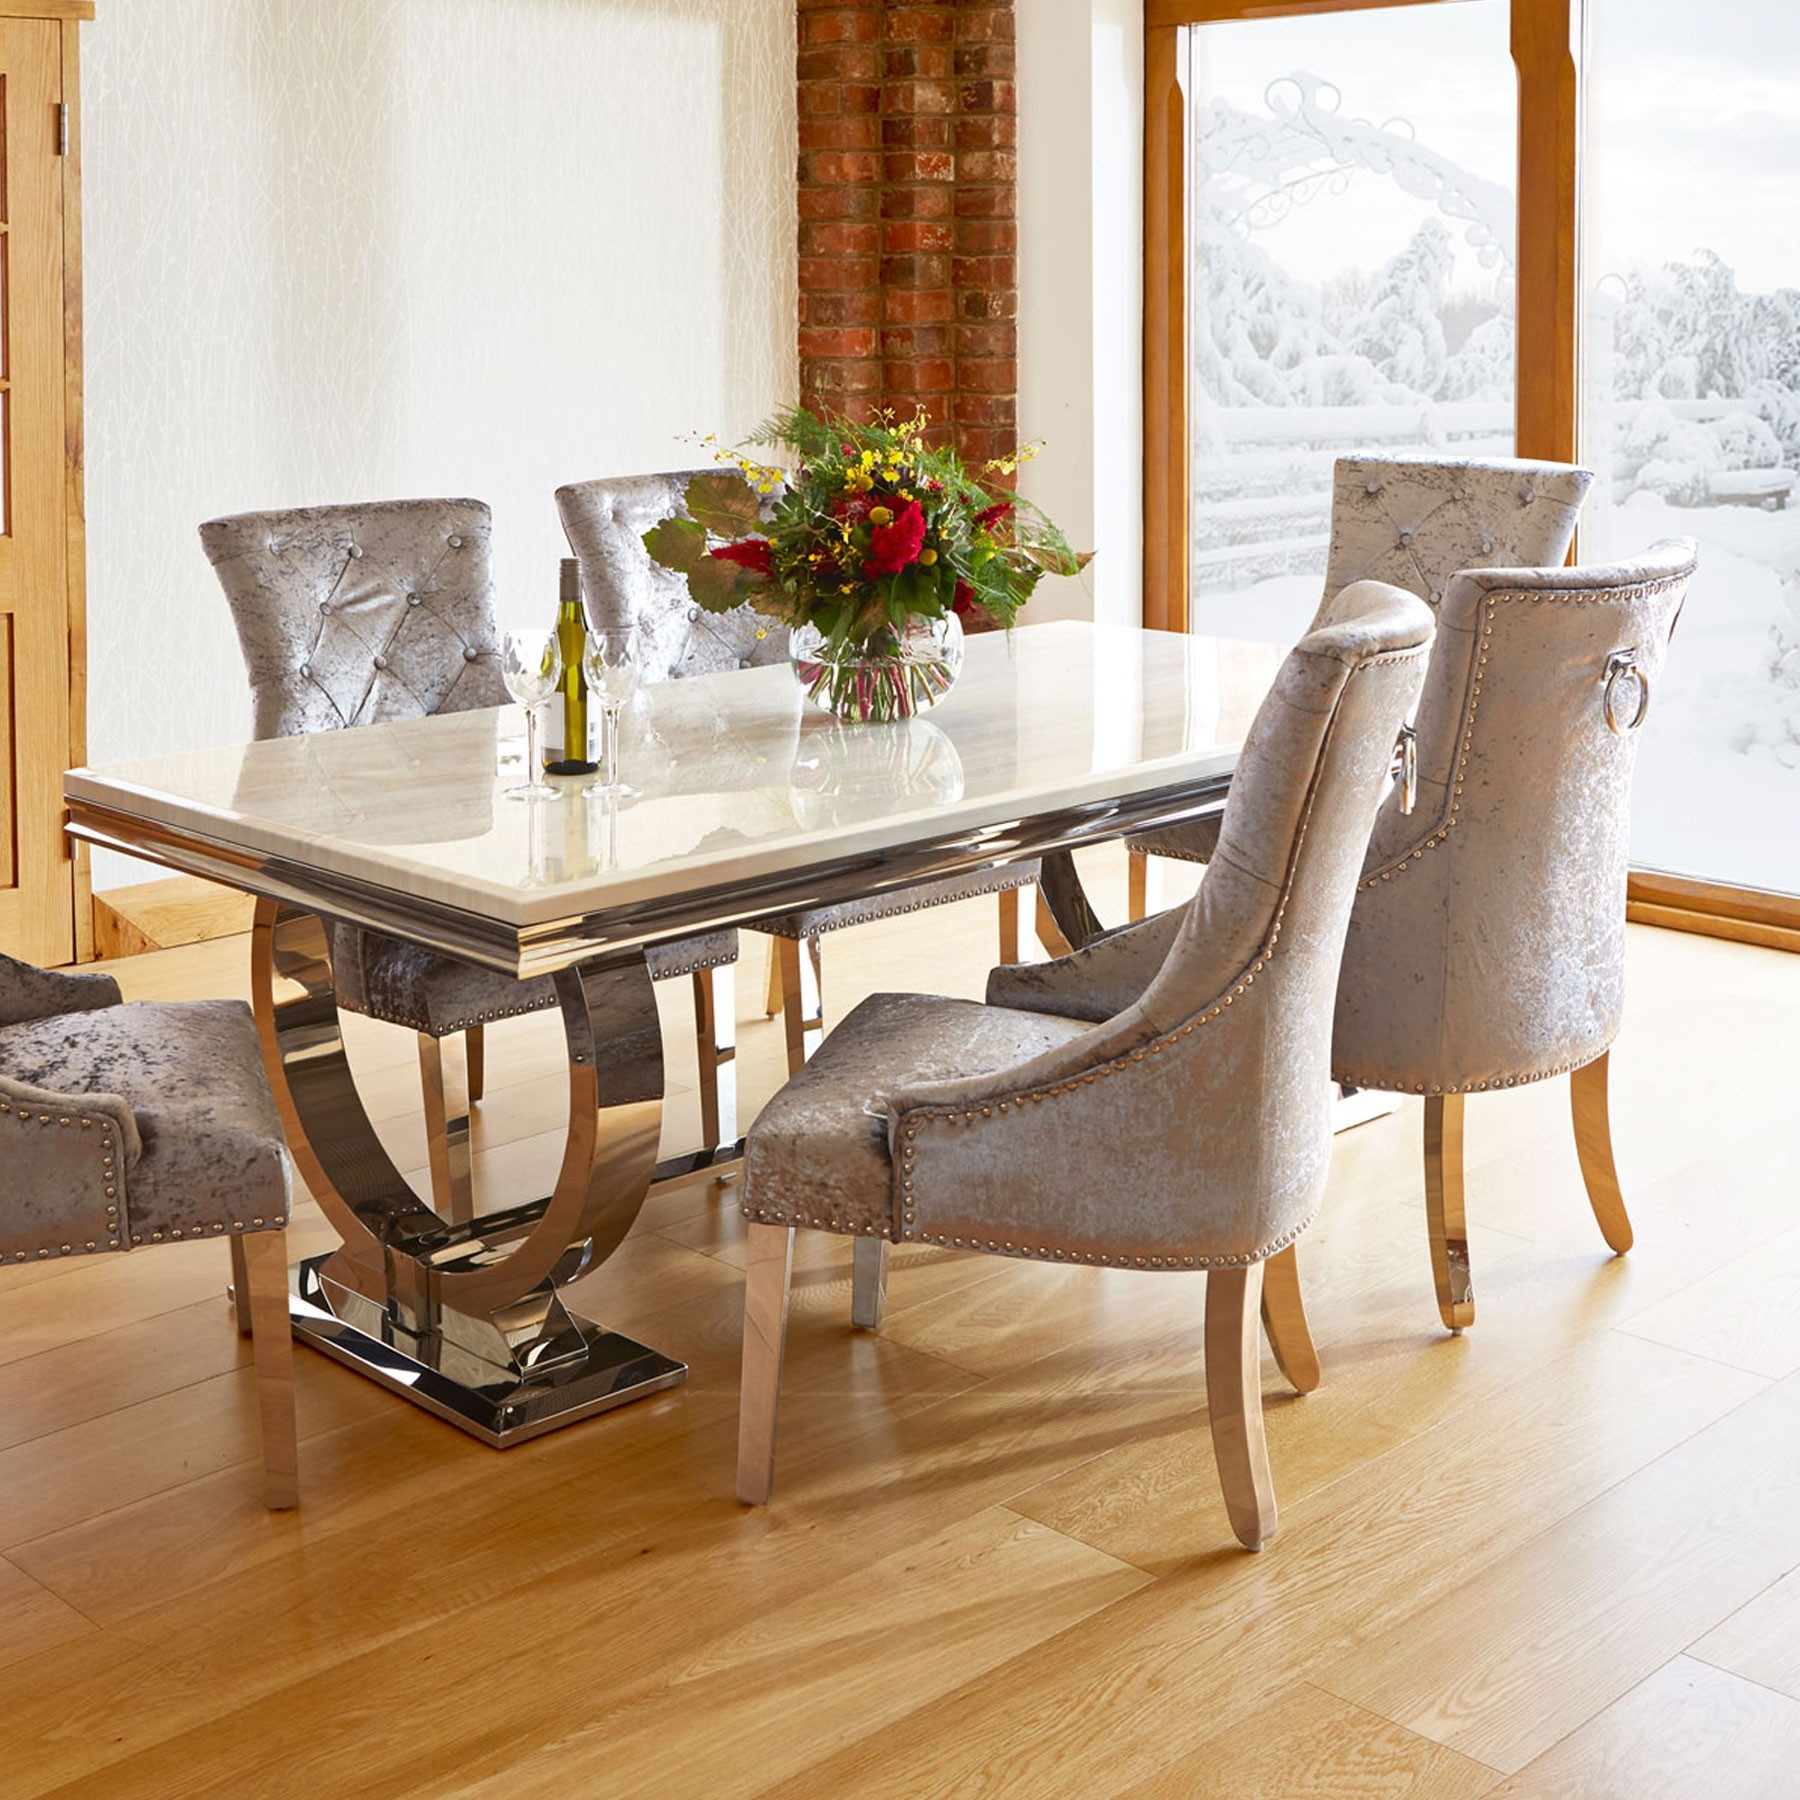 Dining Tables And Chairs – All You Want To Know – Goodworksfurniture Regarding Best And Newest Dining Tables Chairs (View 5 of 25)